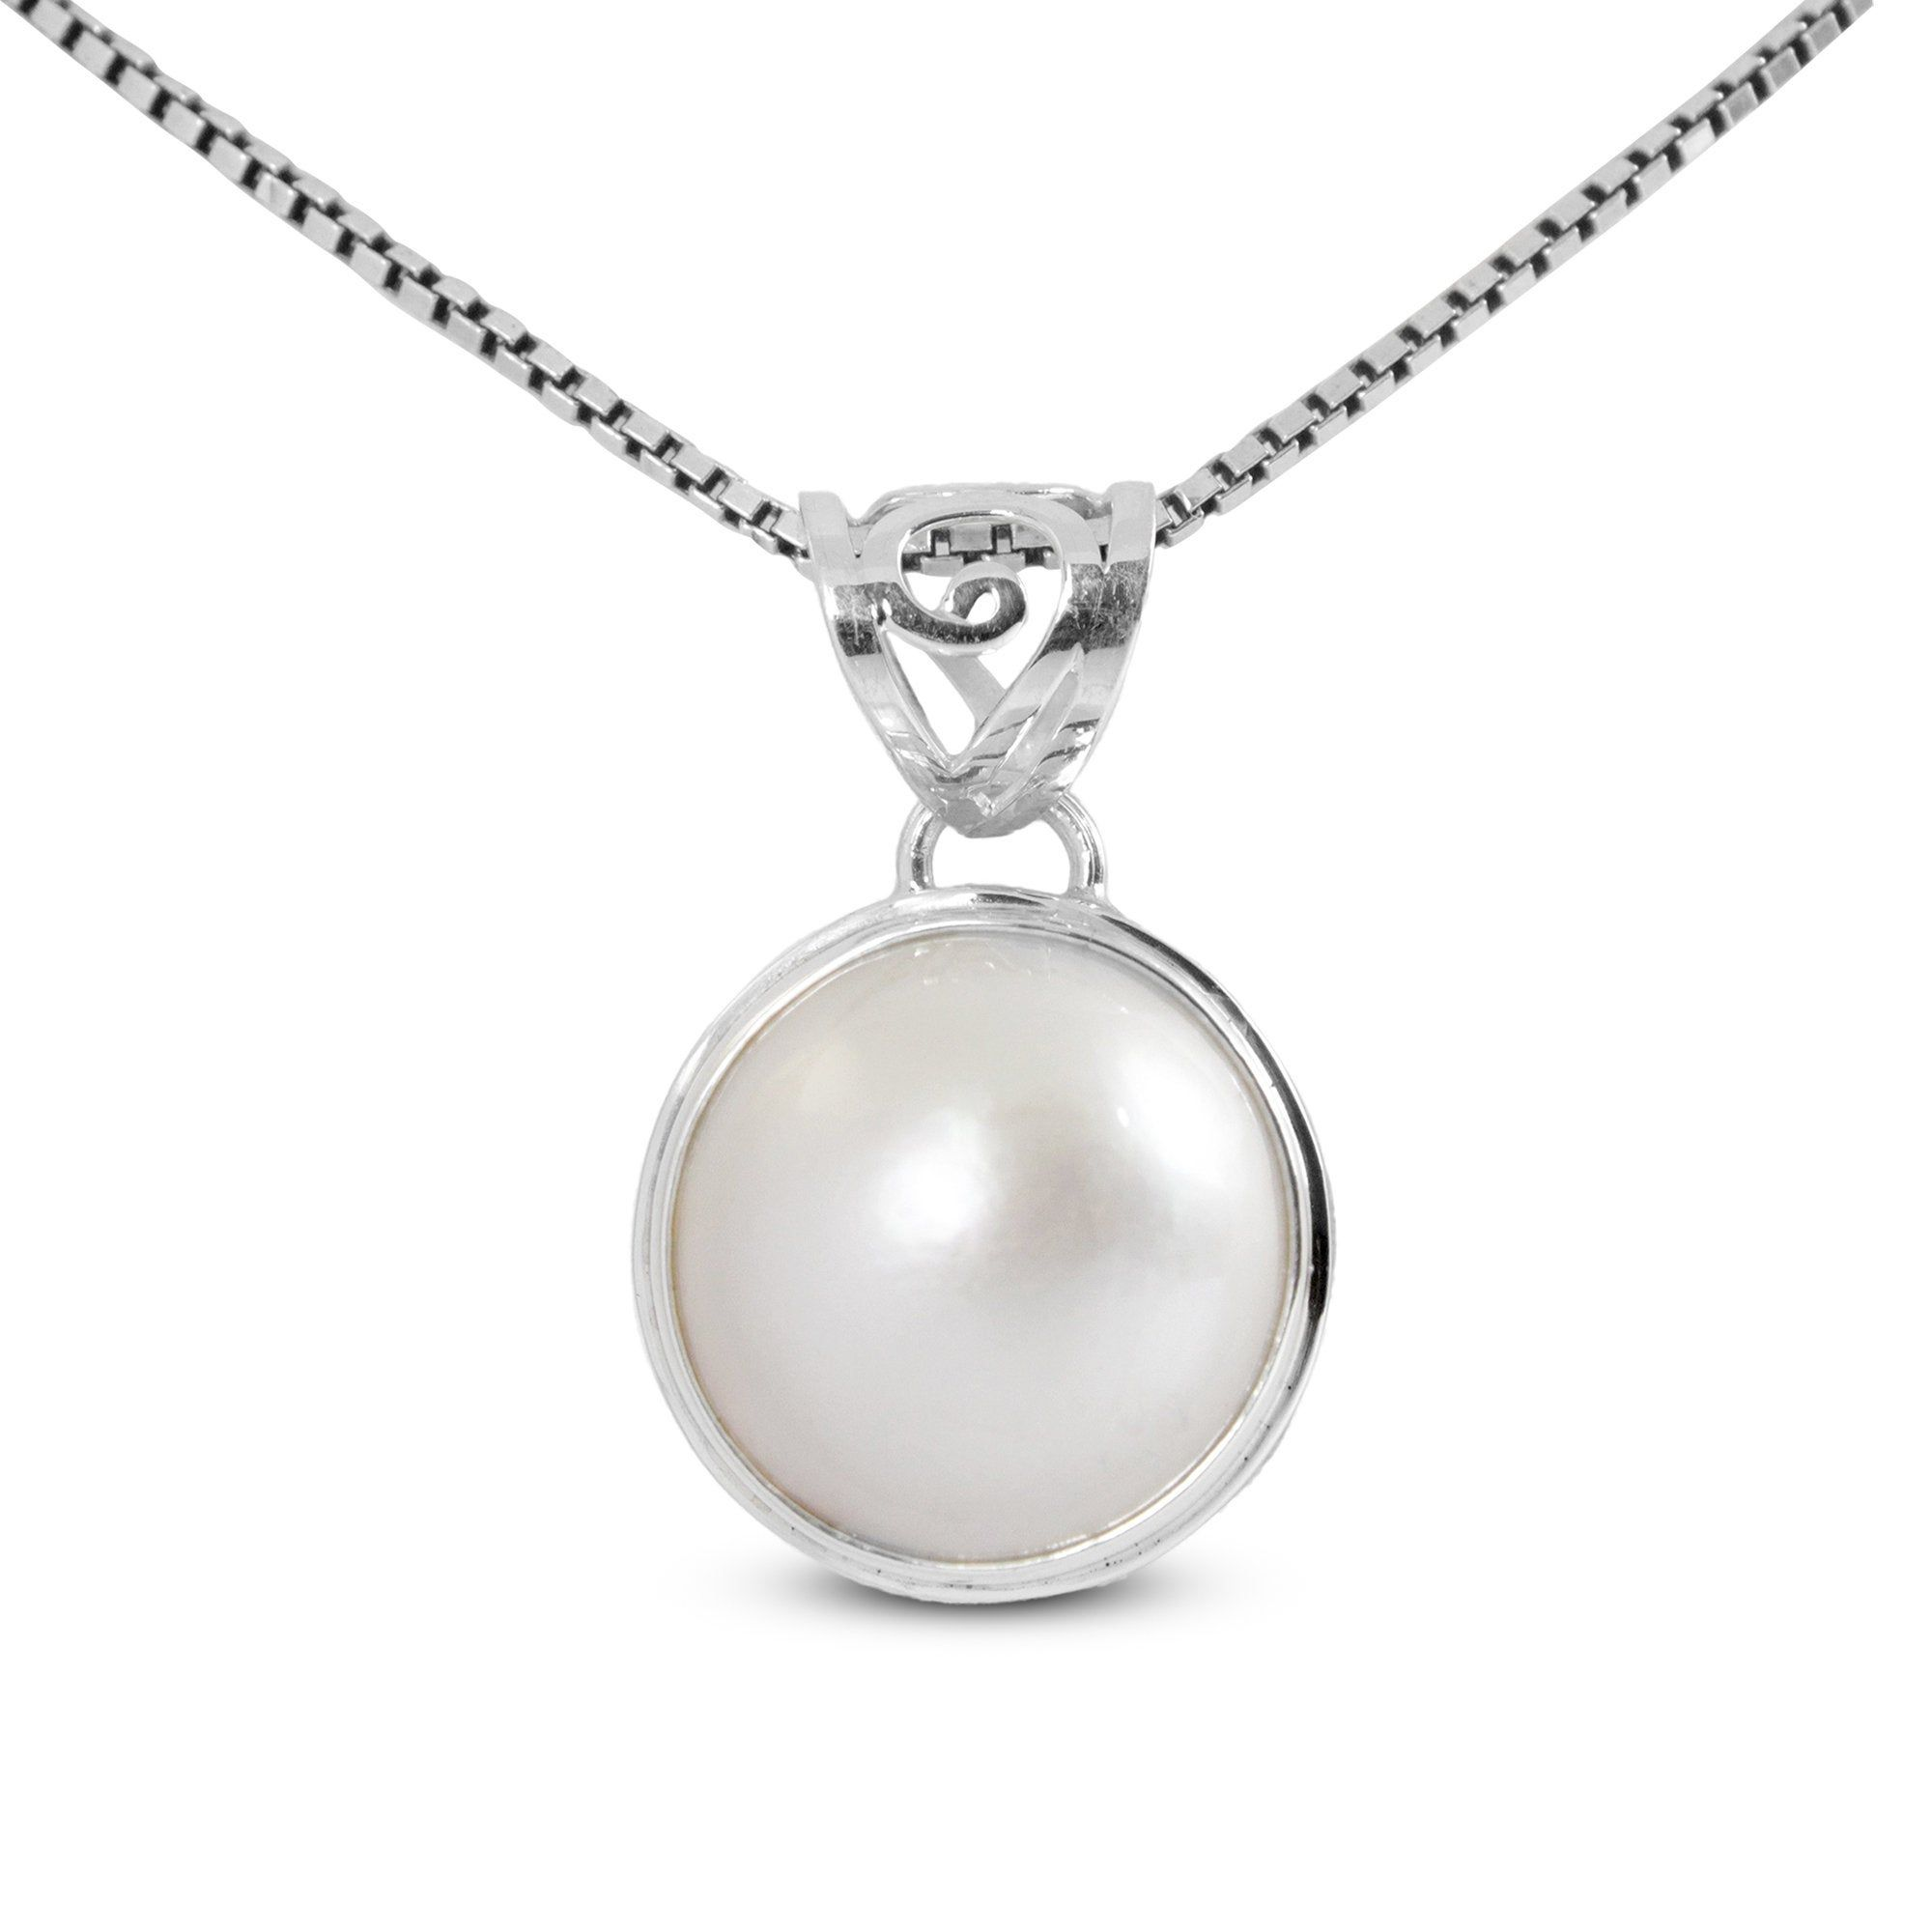 pink pearl Pendant for women beautiful round pendant with genuine pacific Pink mabe pearl decorated with Bali swirl filigree